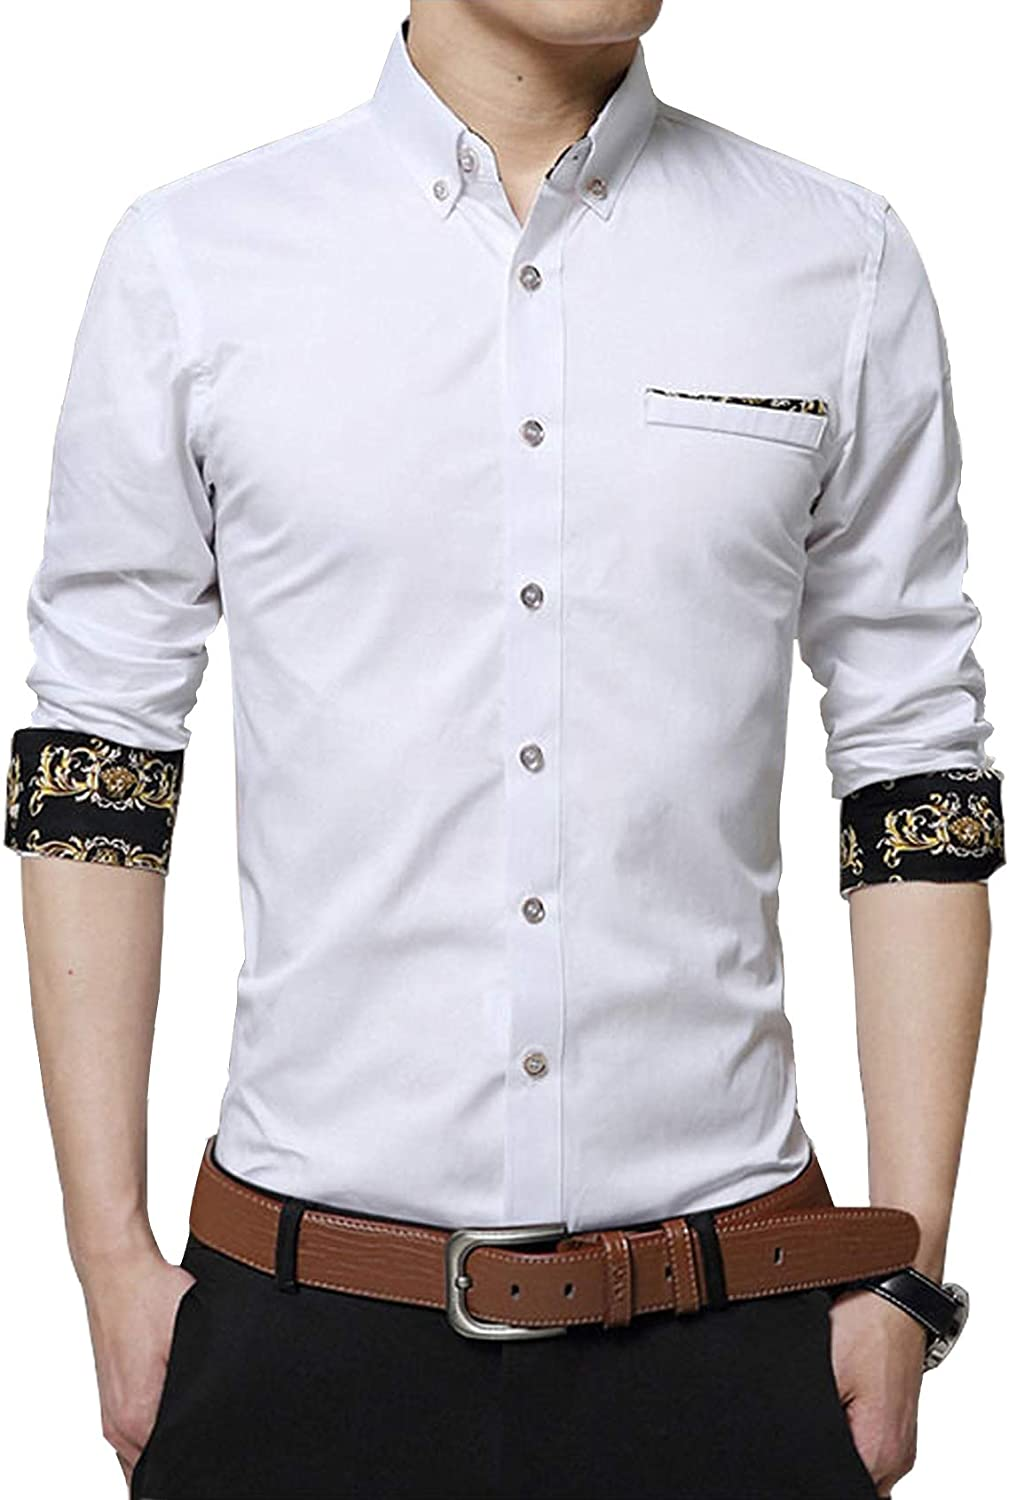 Bestgift Men's Long Sleeve Big Size Solid Floral Cuff Shirt